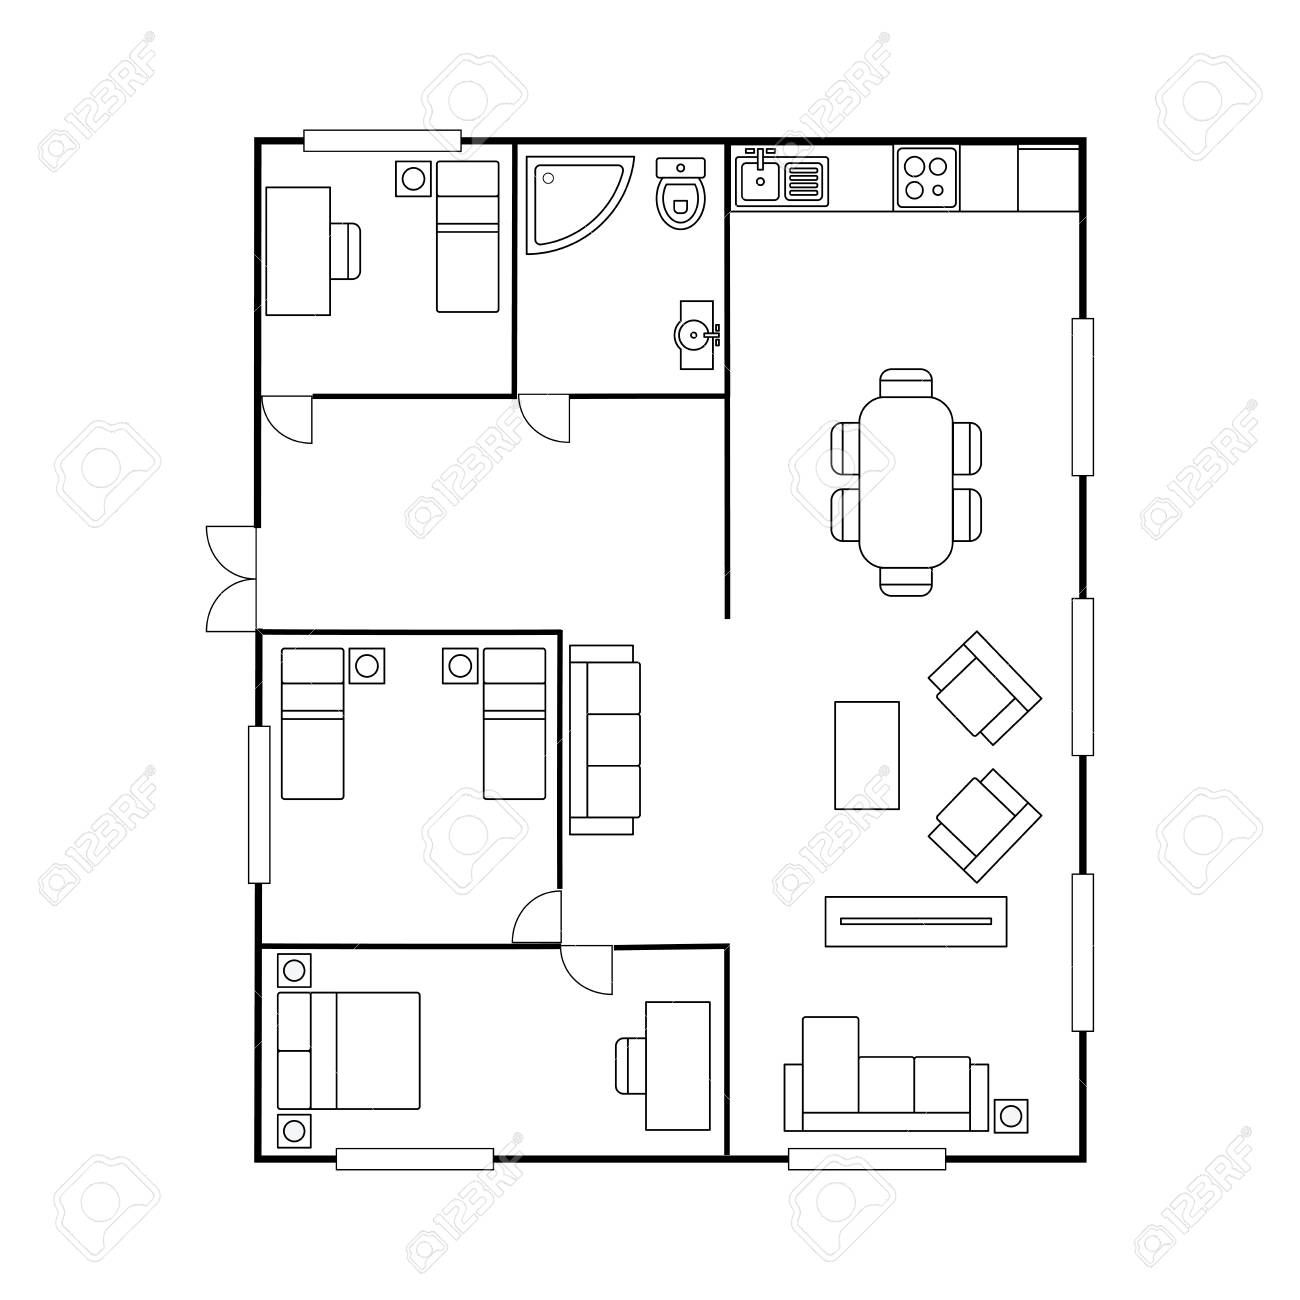 . Architecture plan with furniture  House floor plan  isolated